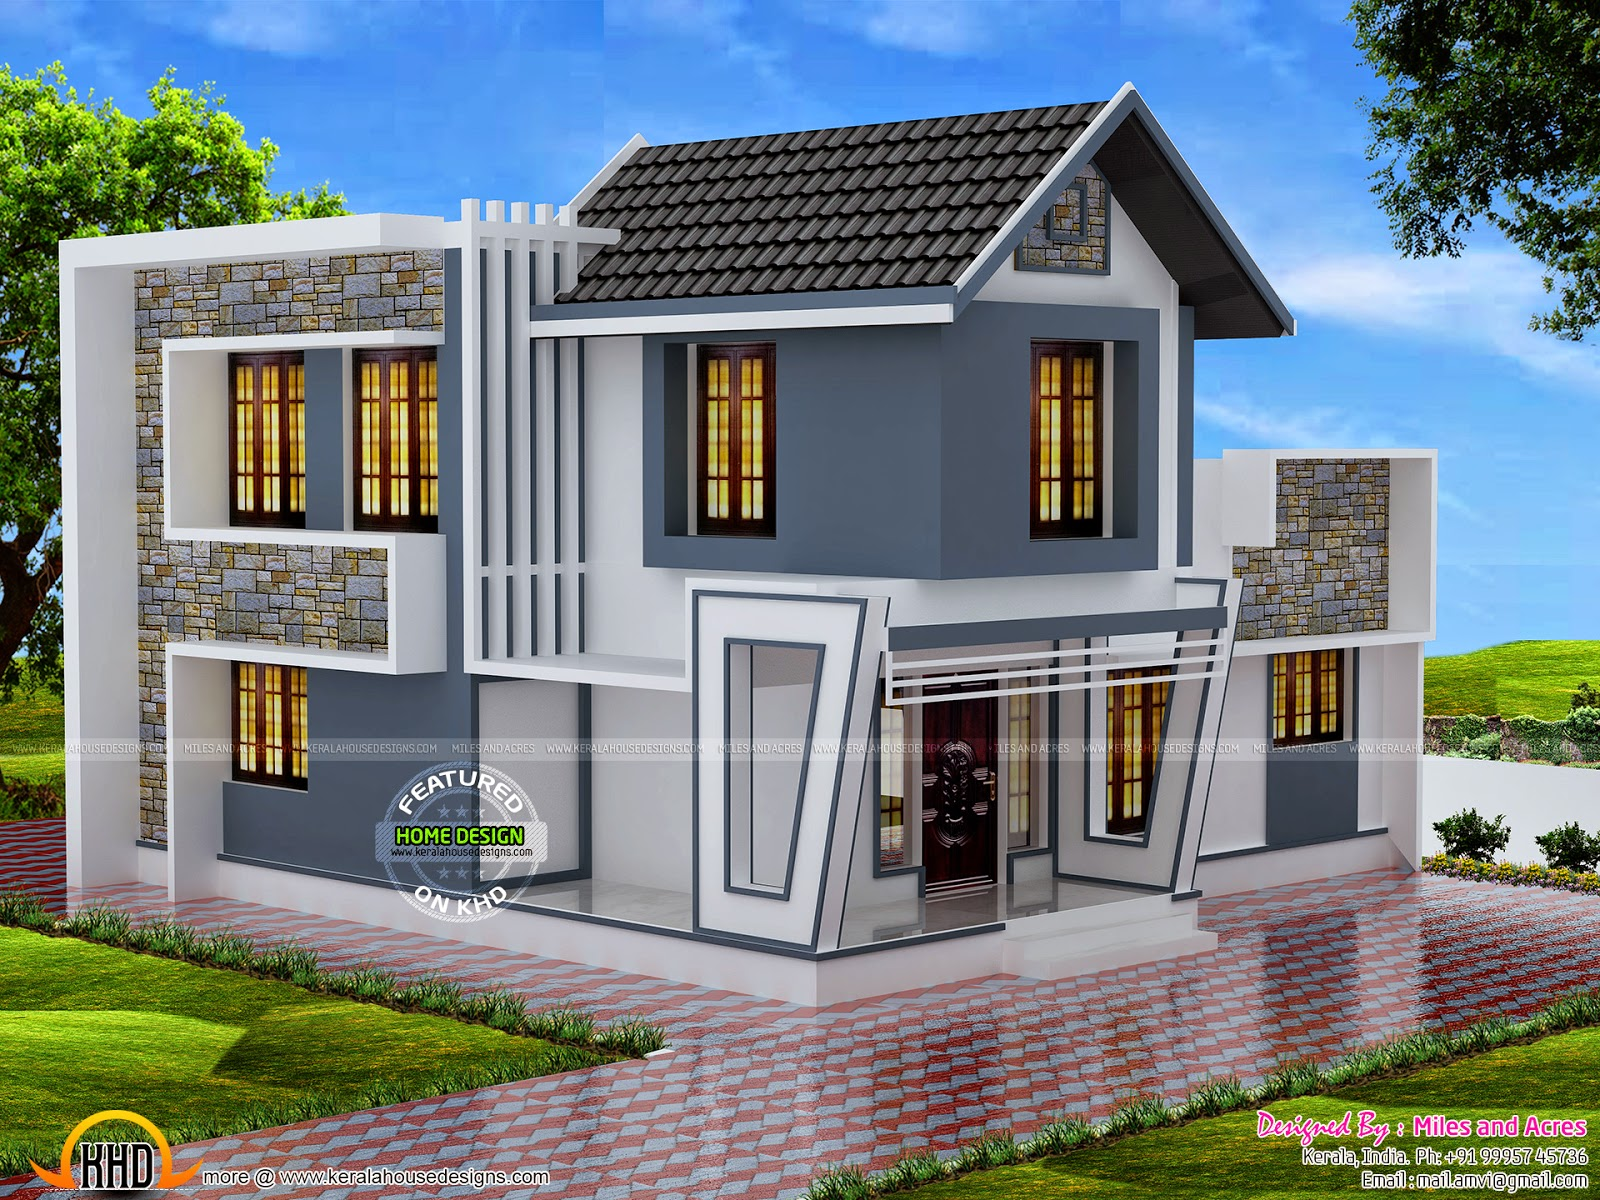 See floor plans read more please follow kerala home design - Free Floor Plan Available Yes Design Style Modern See House Plan Read More Please Follow Kerala Home Design